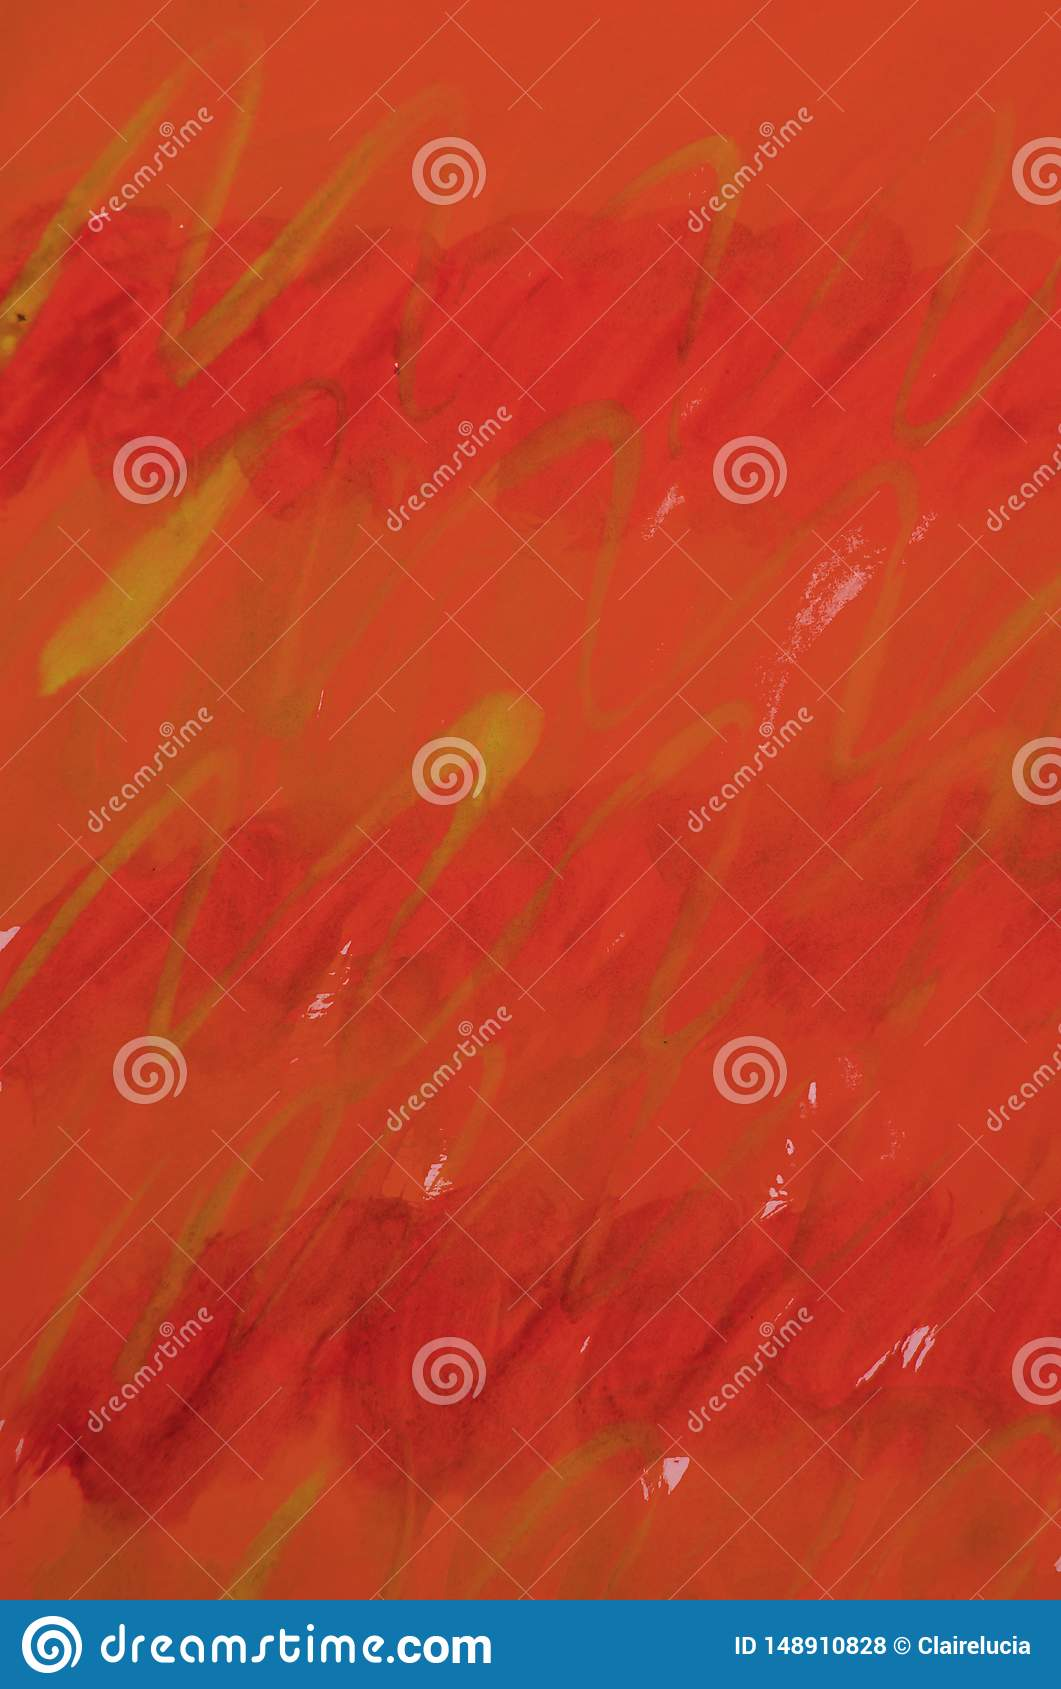 Vertical watercolor raster festive gradient red background with stripes of smooth lines for layout and cover design